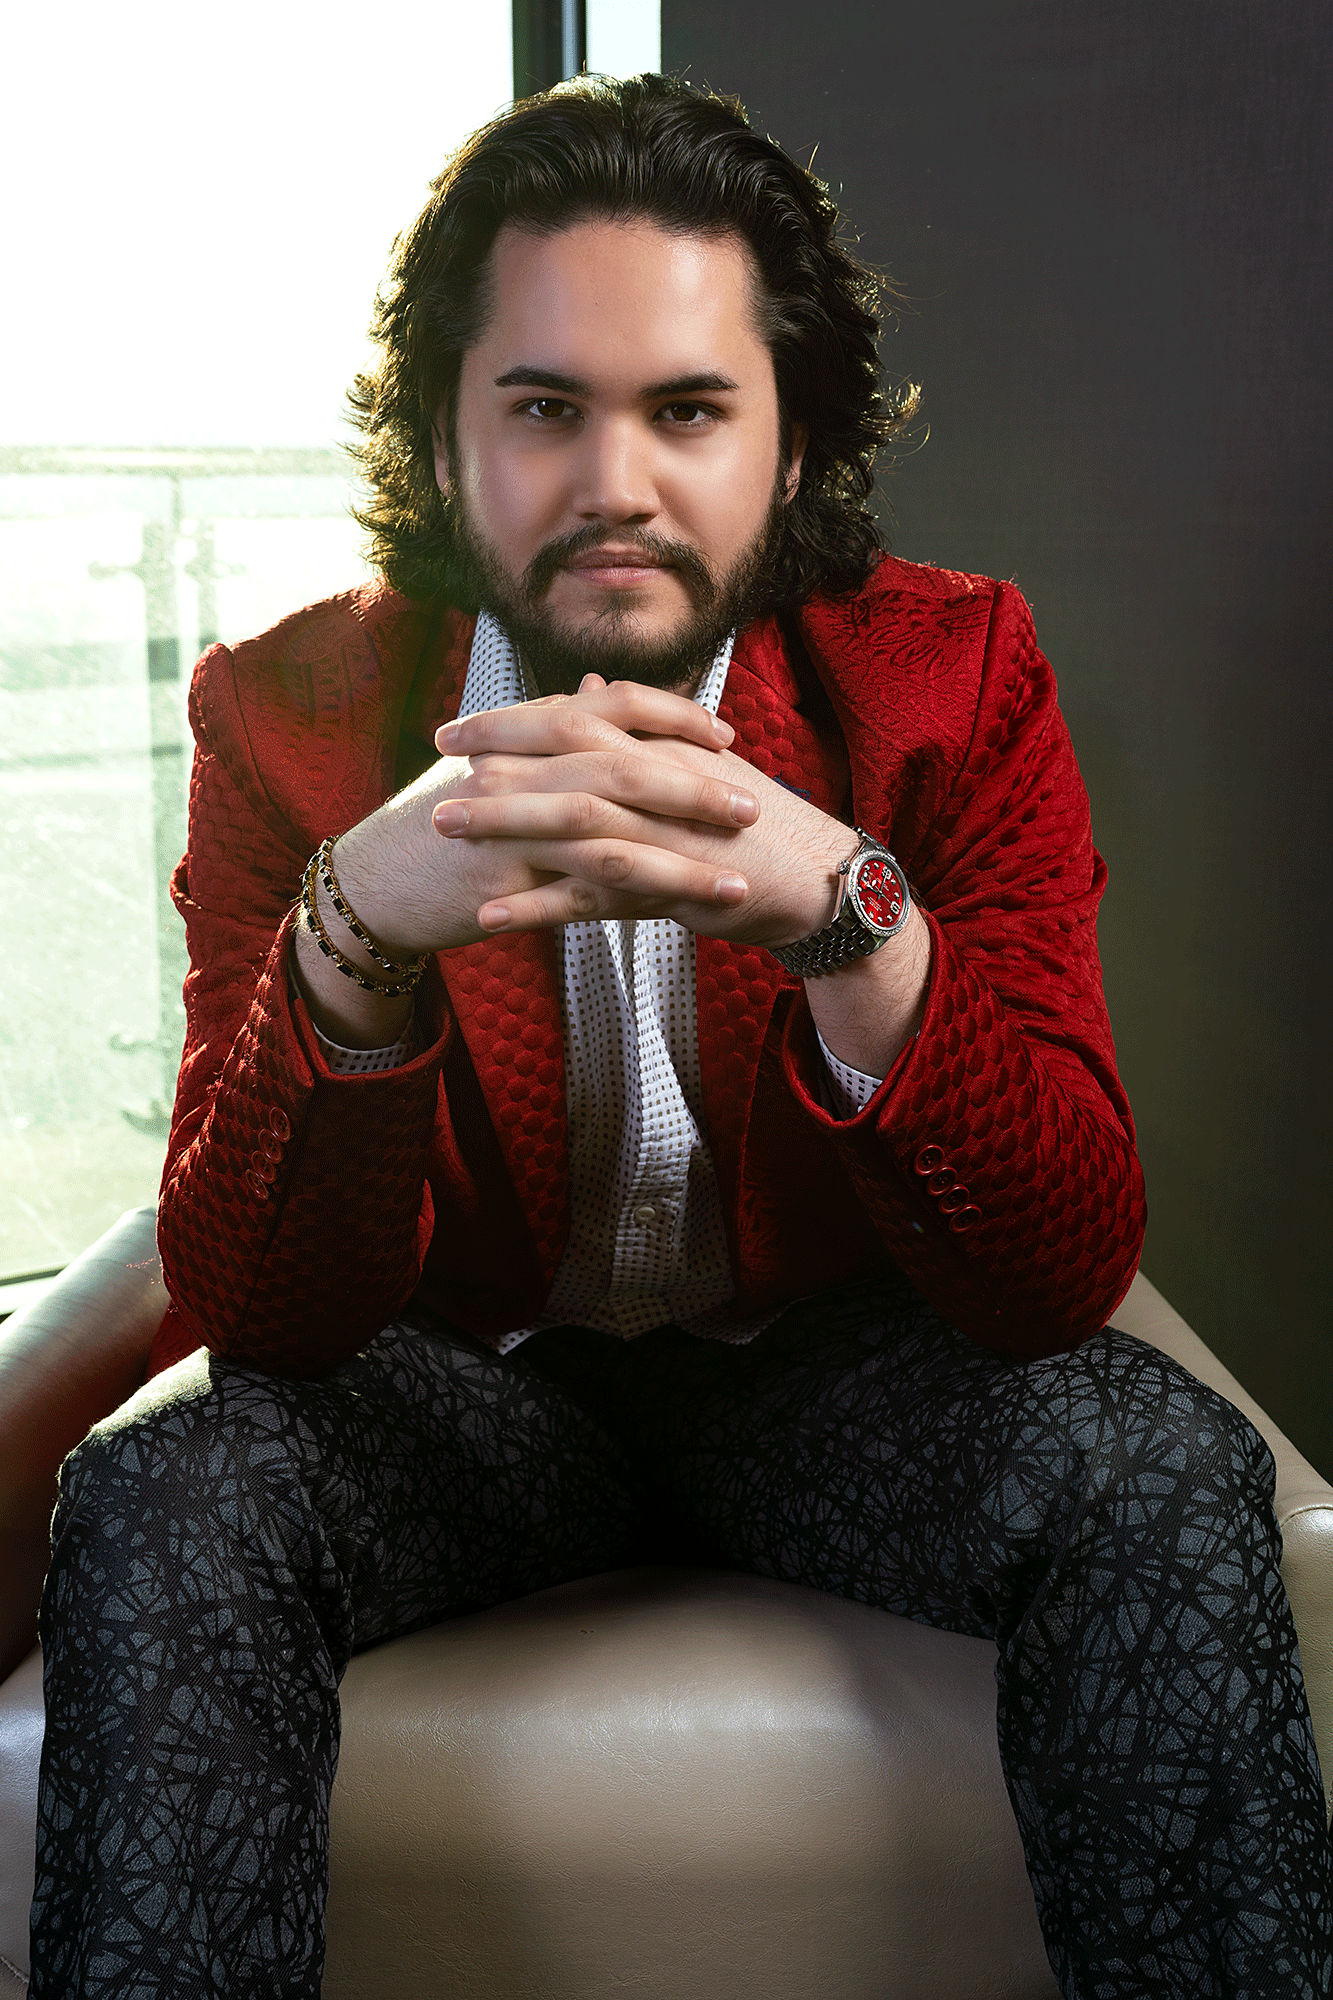 Roman Alexander Wellington In Red Couture Jacket Sitting Down